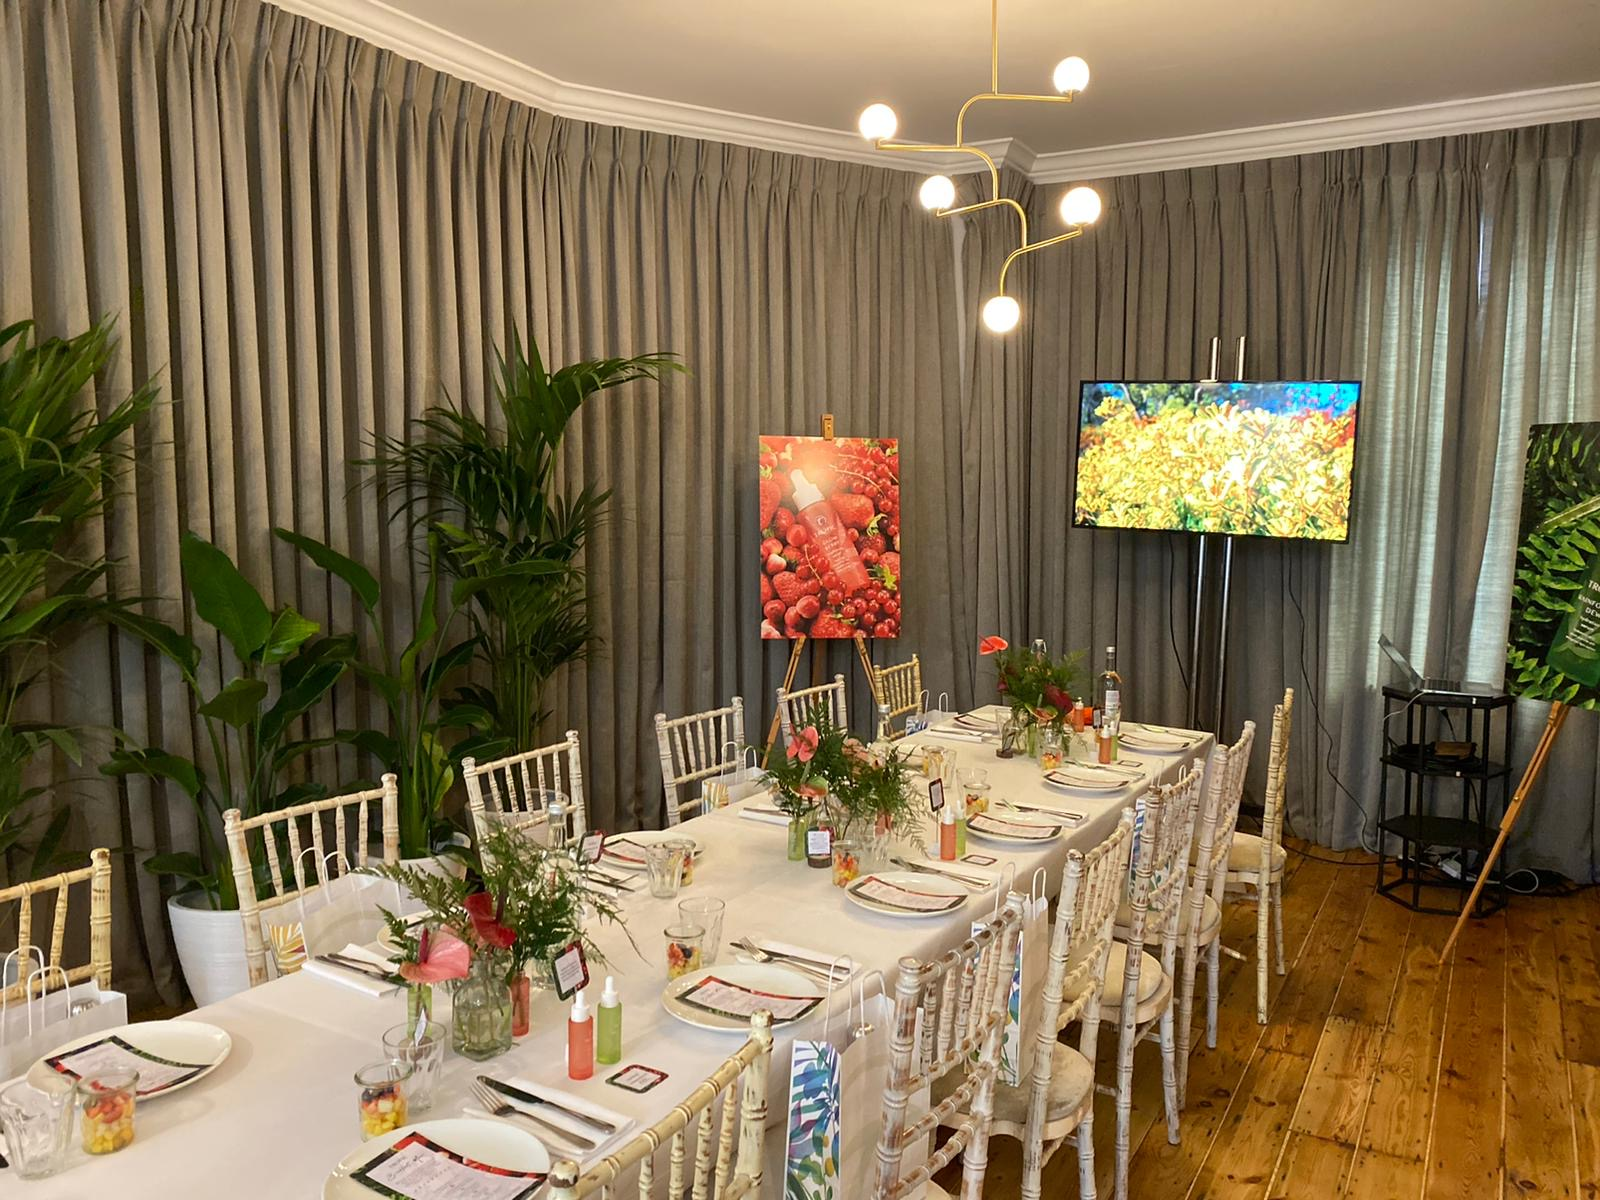 Kilpatrick Celebrates Tropic's New Serums at AllBright Members Club